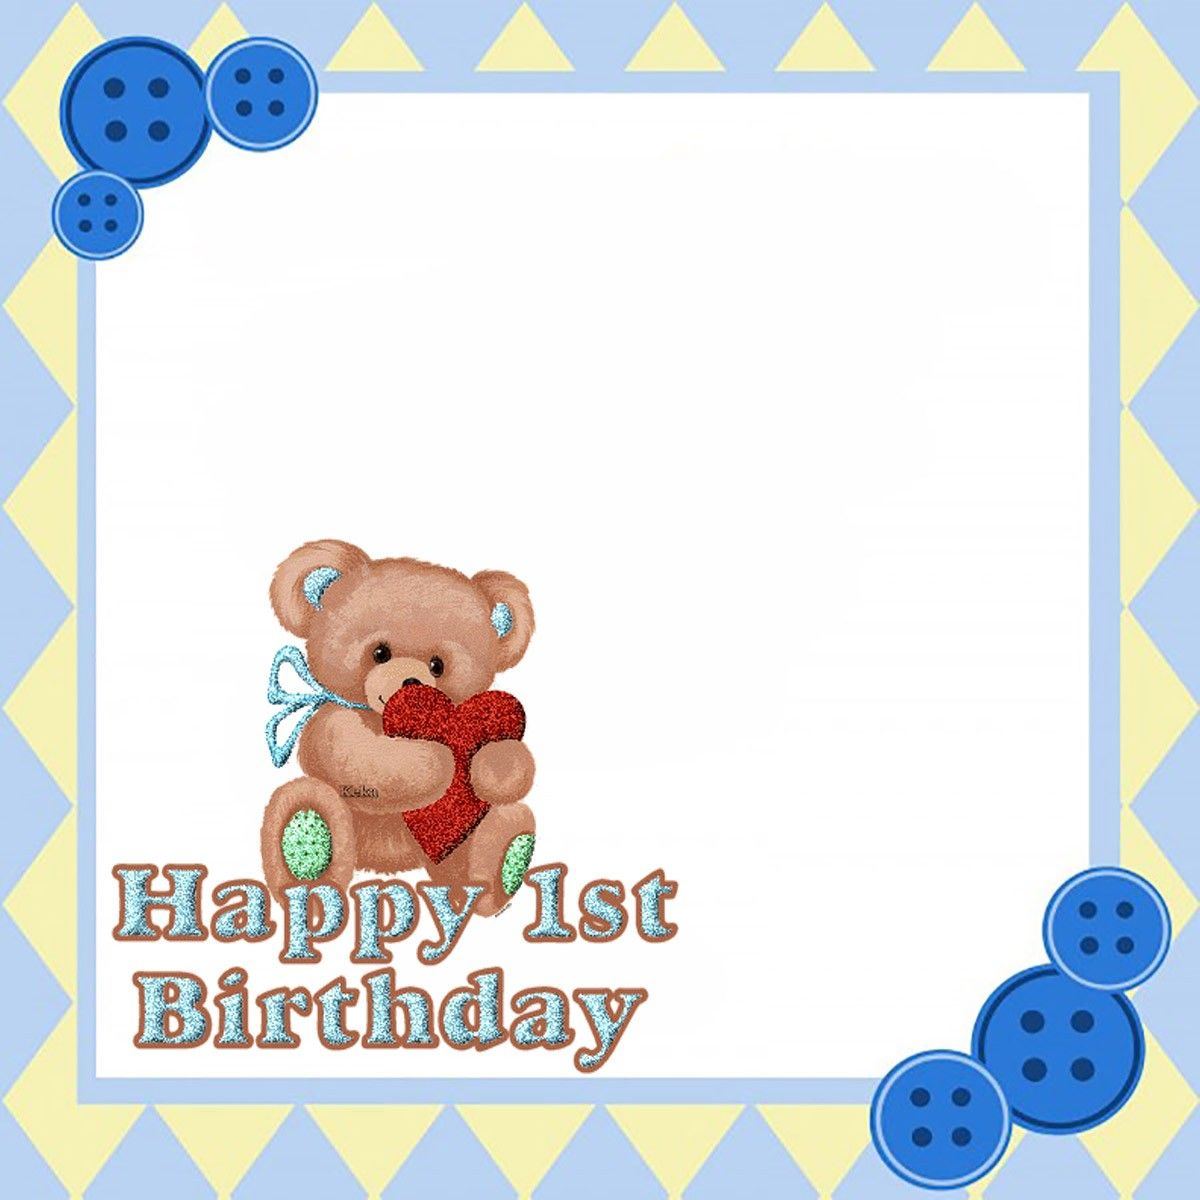 Printable Teddy Bear First Birthday Invitation Card First Birthday Invitation Cards Bear Invitations Printable Birthday Invitations